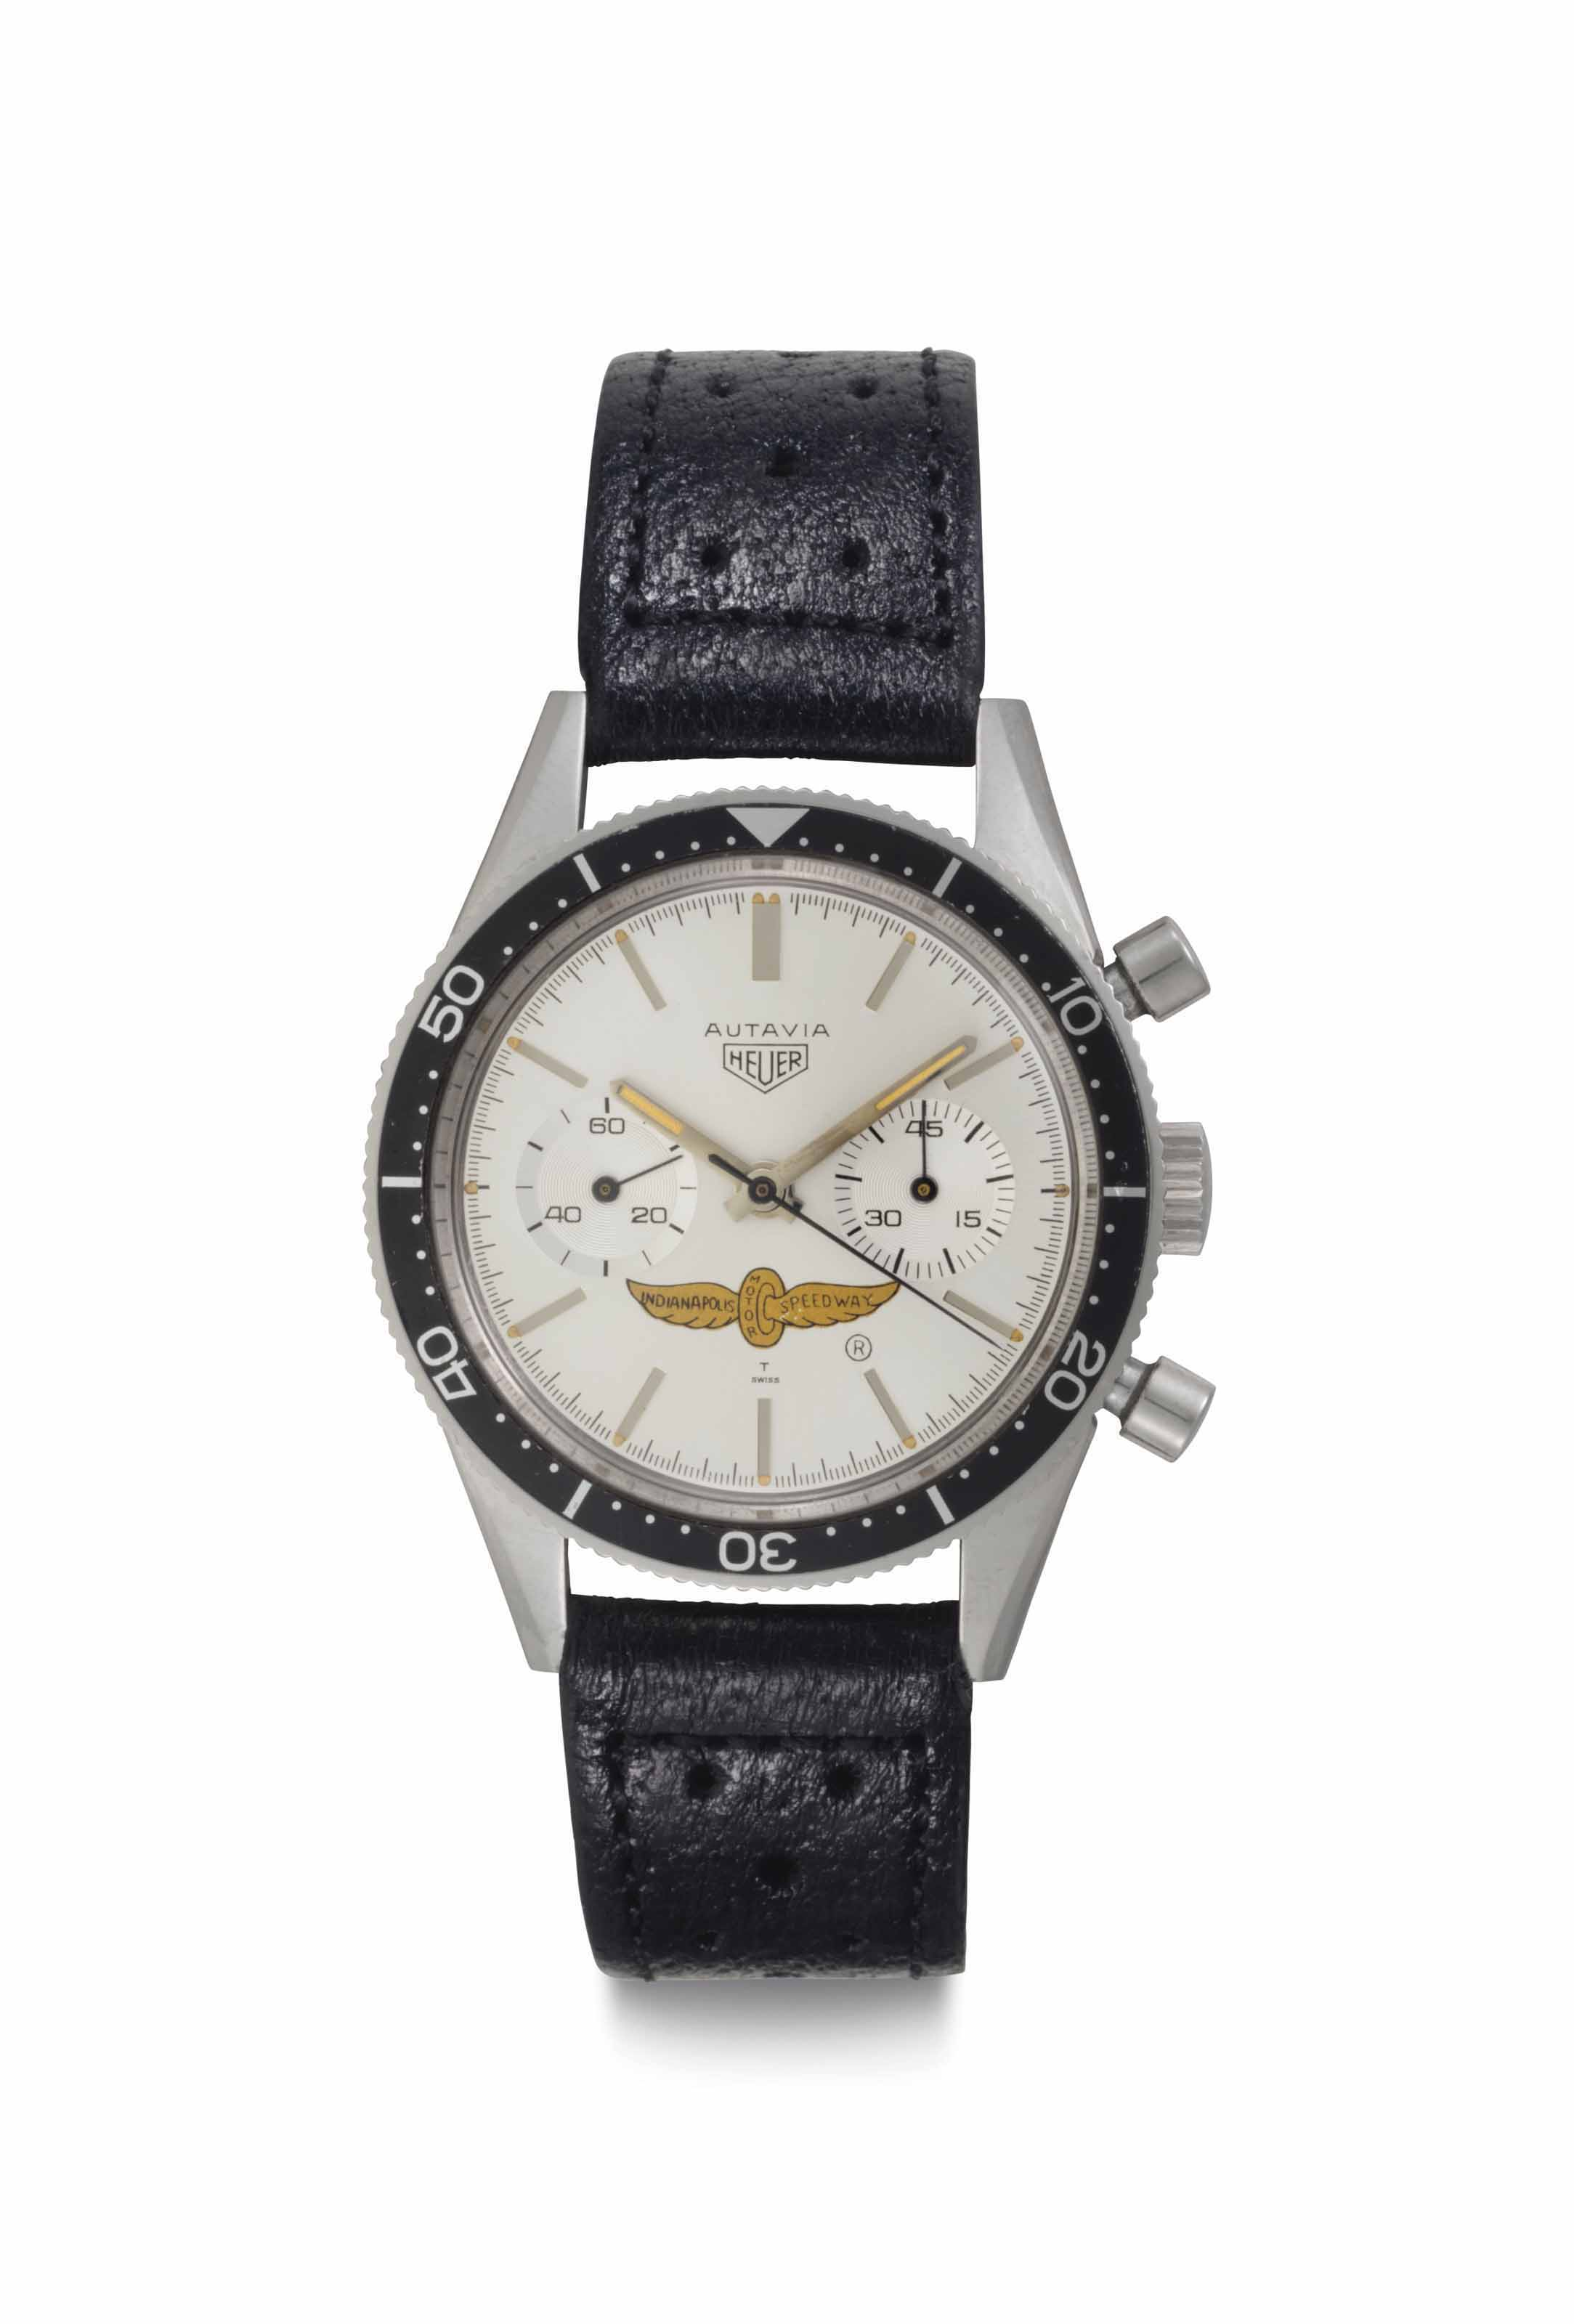 Heuer. A Very Fine and Extremely Rare Stainless Steel Chronograph Wristwatch with Center Seconds with Indianapolis Motor Speedway Logo Dial